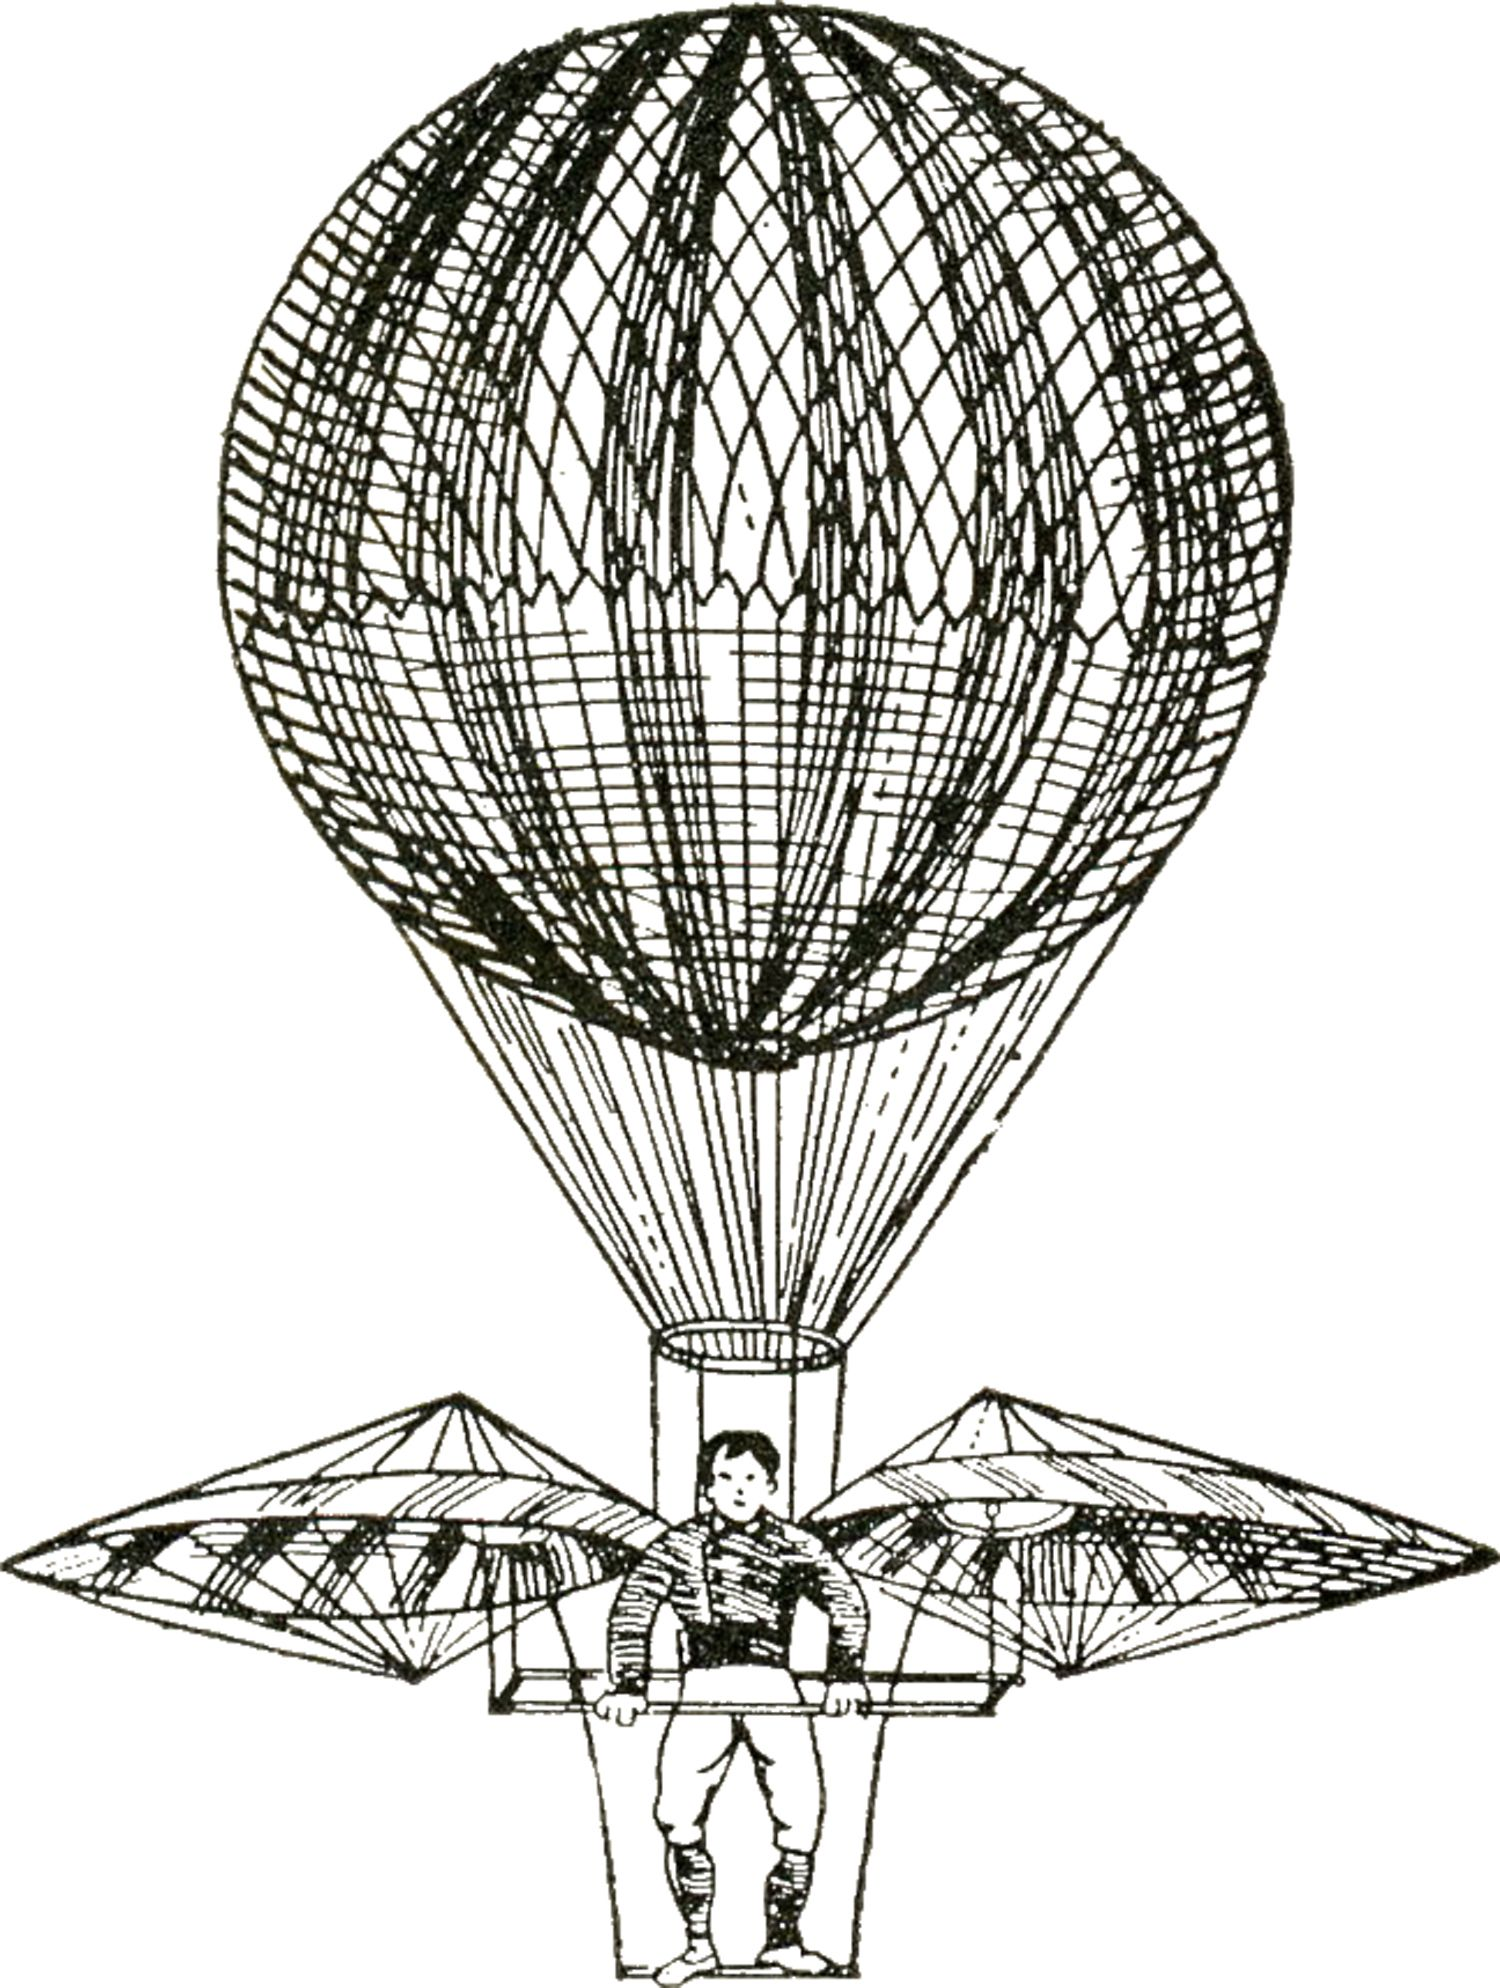 Vintage Images - Hot Air Balloons - Steampunk | Vintage images, Hot ...